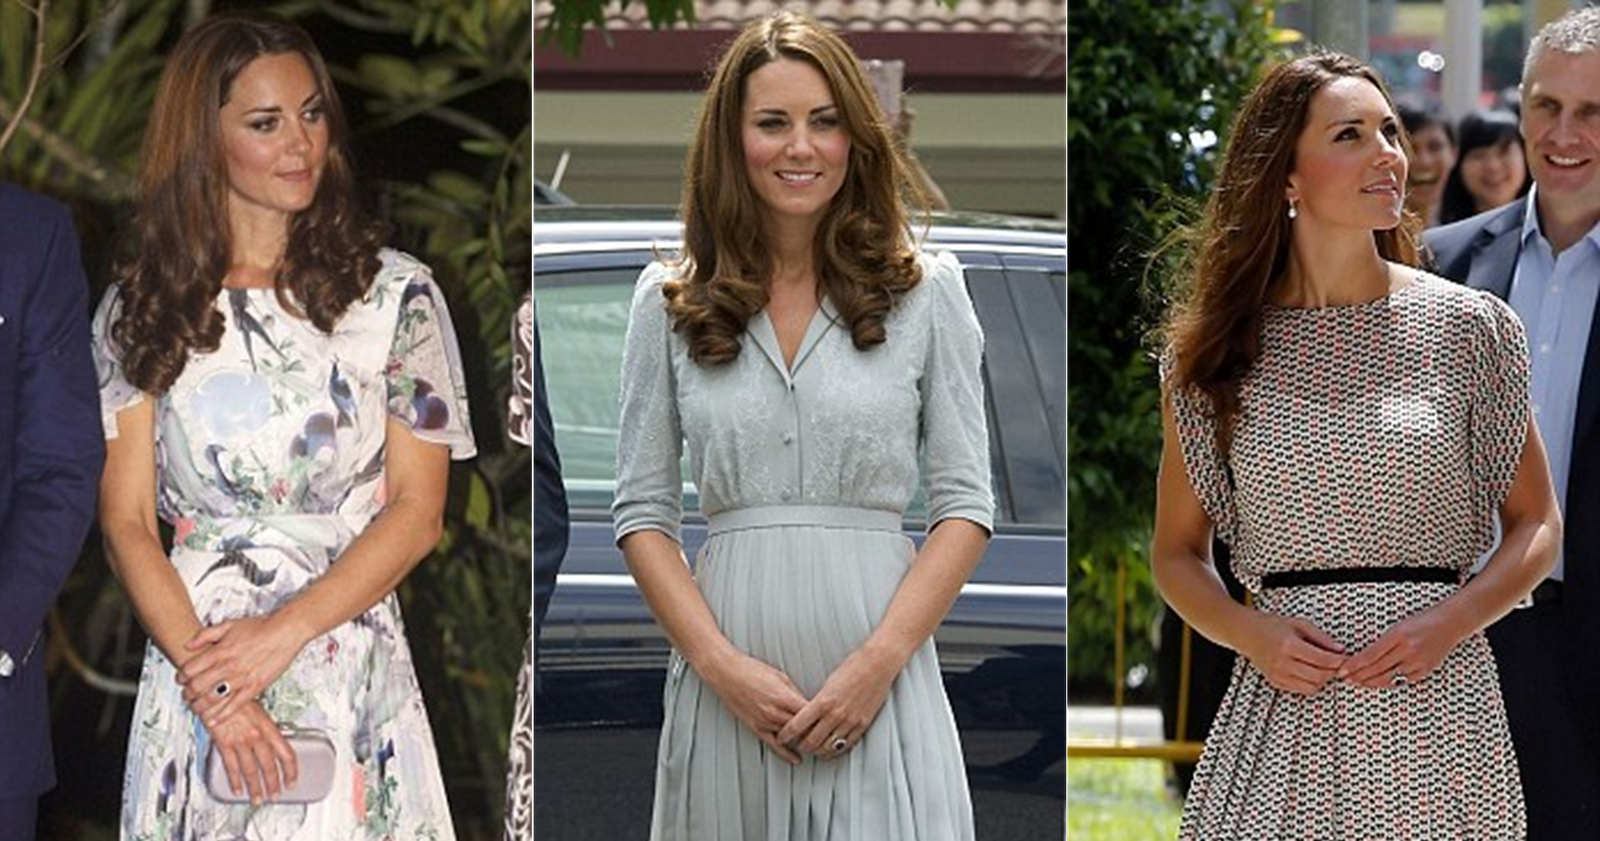 Fashion Royalty What Do You Think Of These Kate Middleton Looks Playbuzz